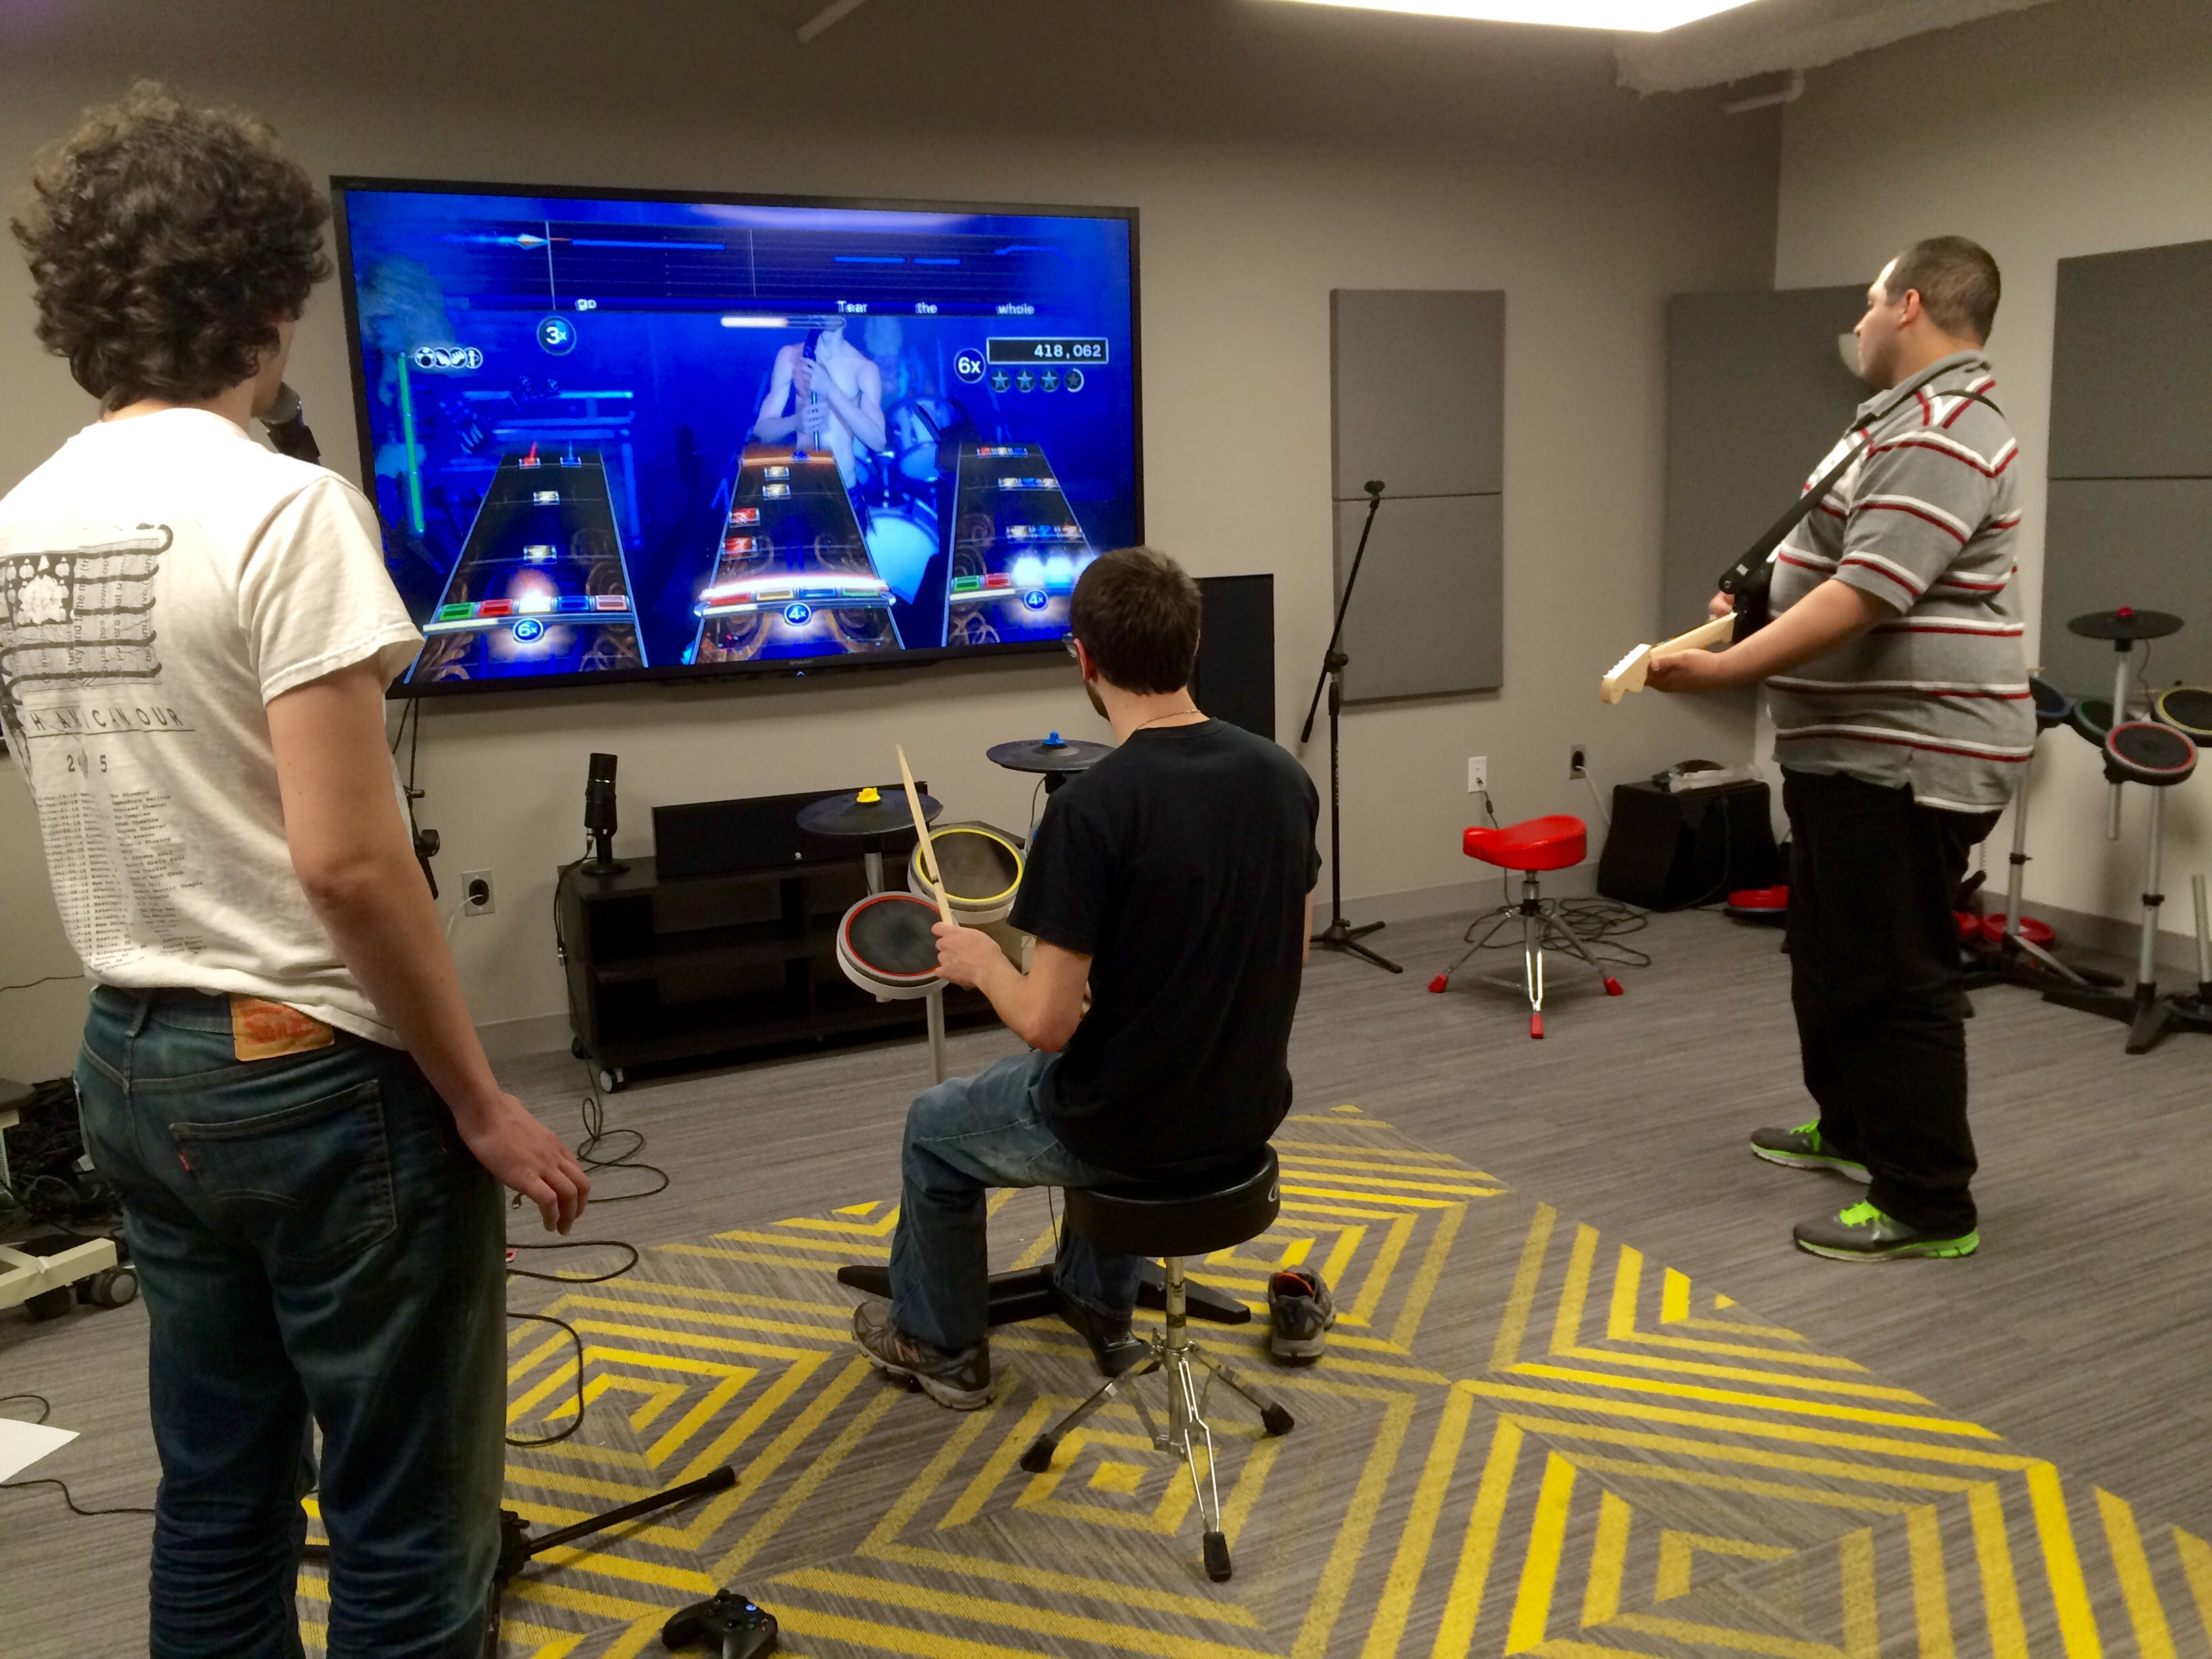 Getting the band together for a play session of Rock Band 4!